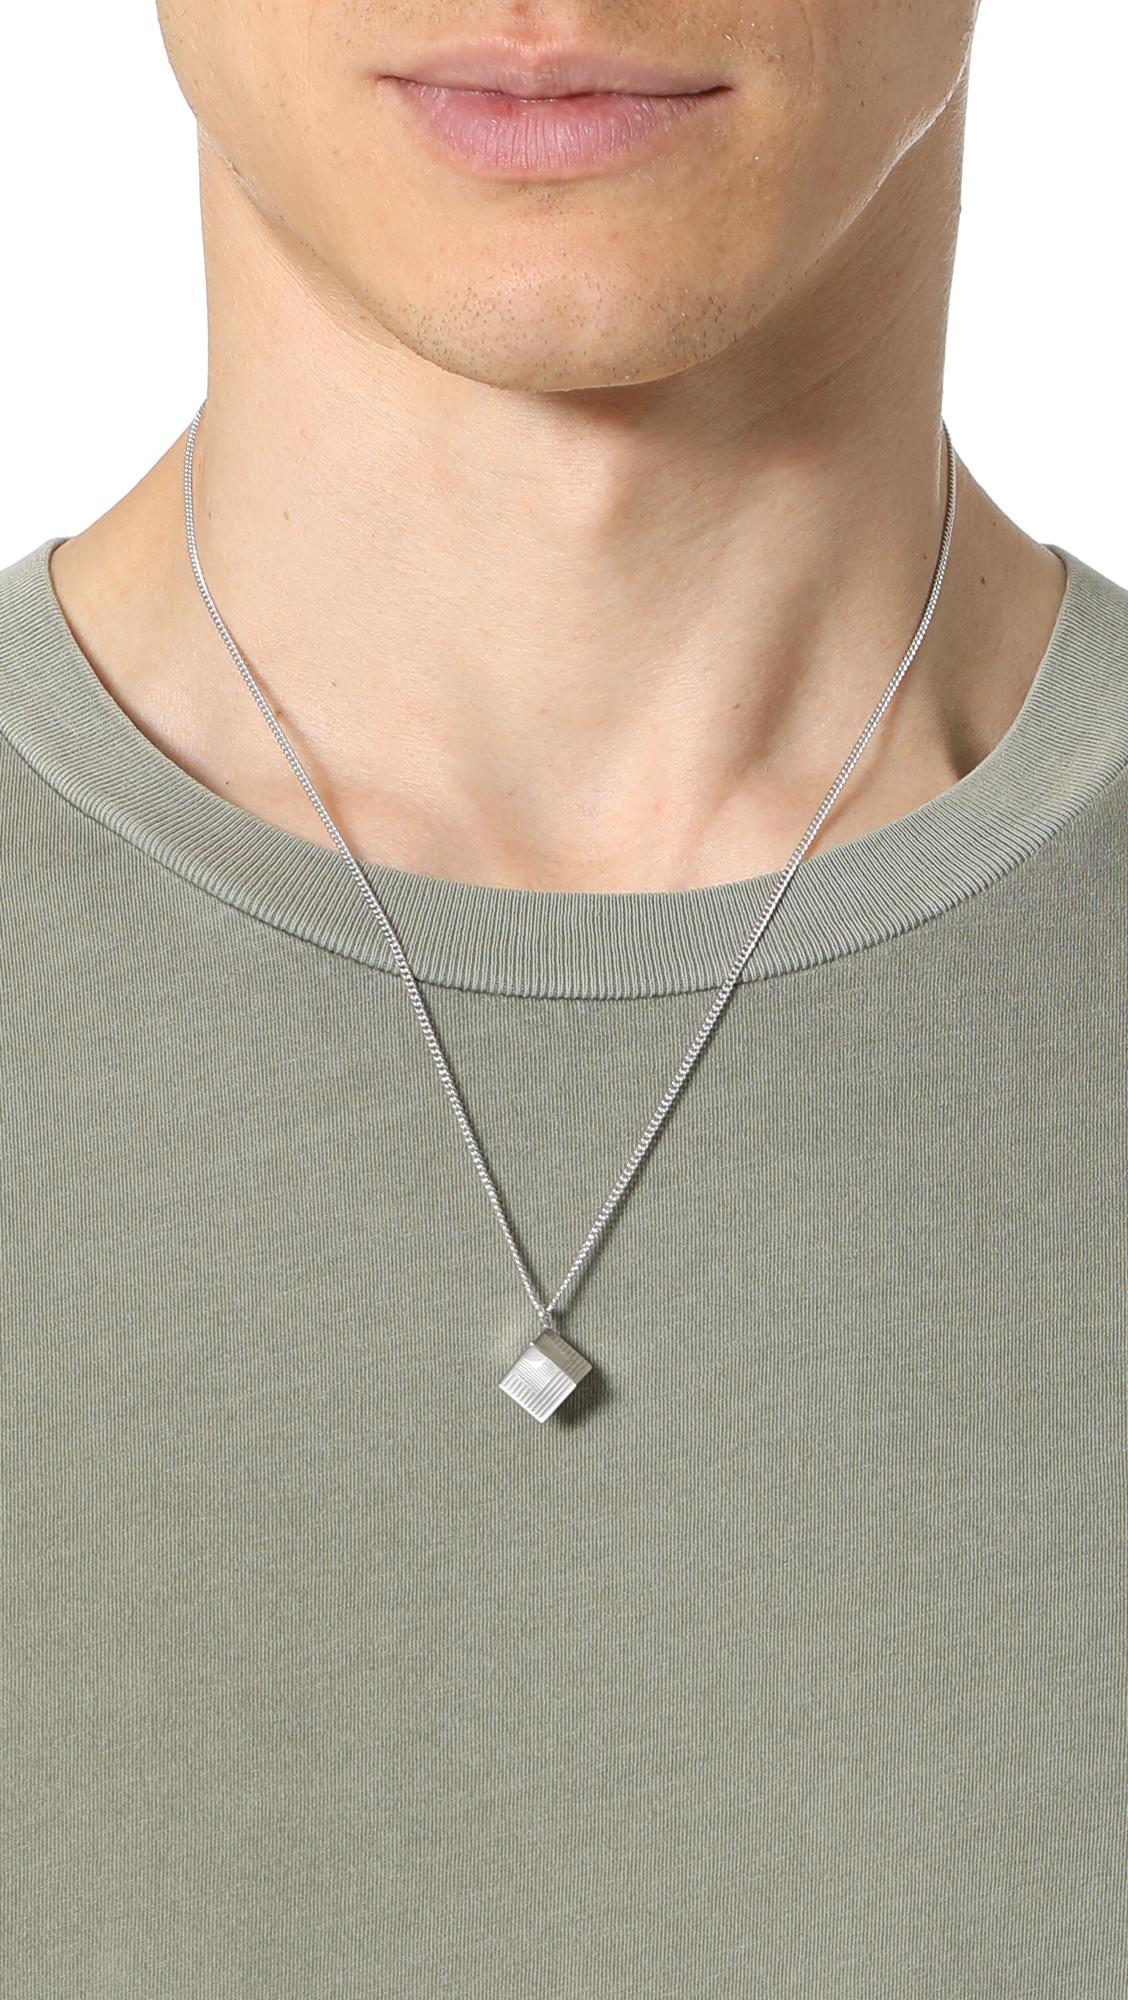 A.P.C. Collier Rubik Necklace in Silver (Metallic) for Men